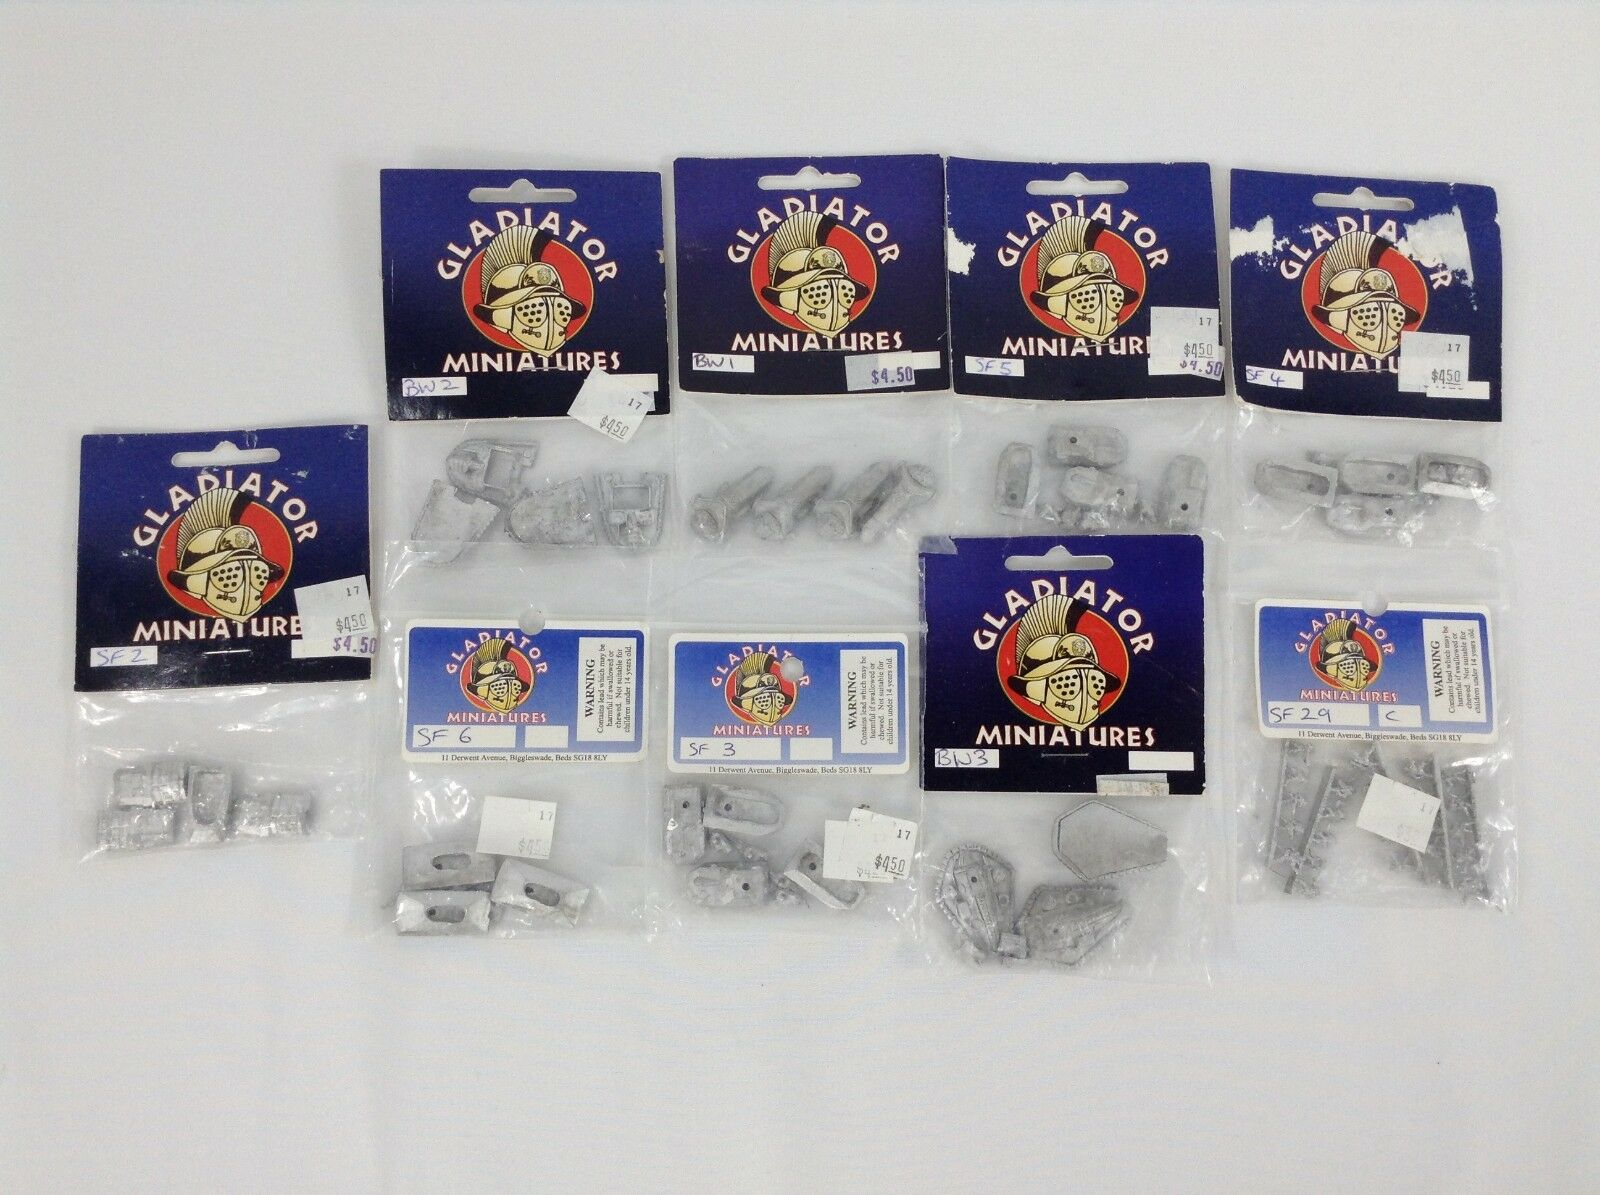 Gladiator Miniatures Lot of 9 Wargaming Minis Tanks Soldiers SF2 SF3 SF4 SF5 +++